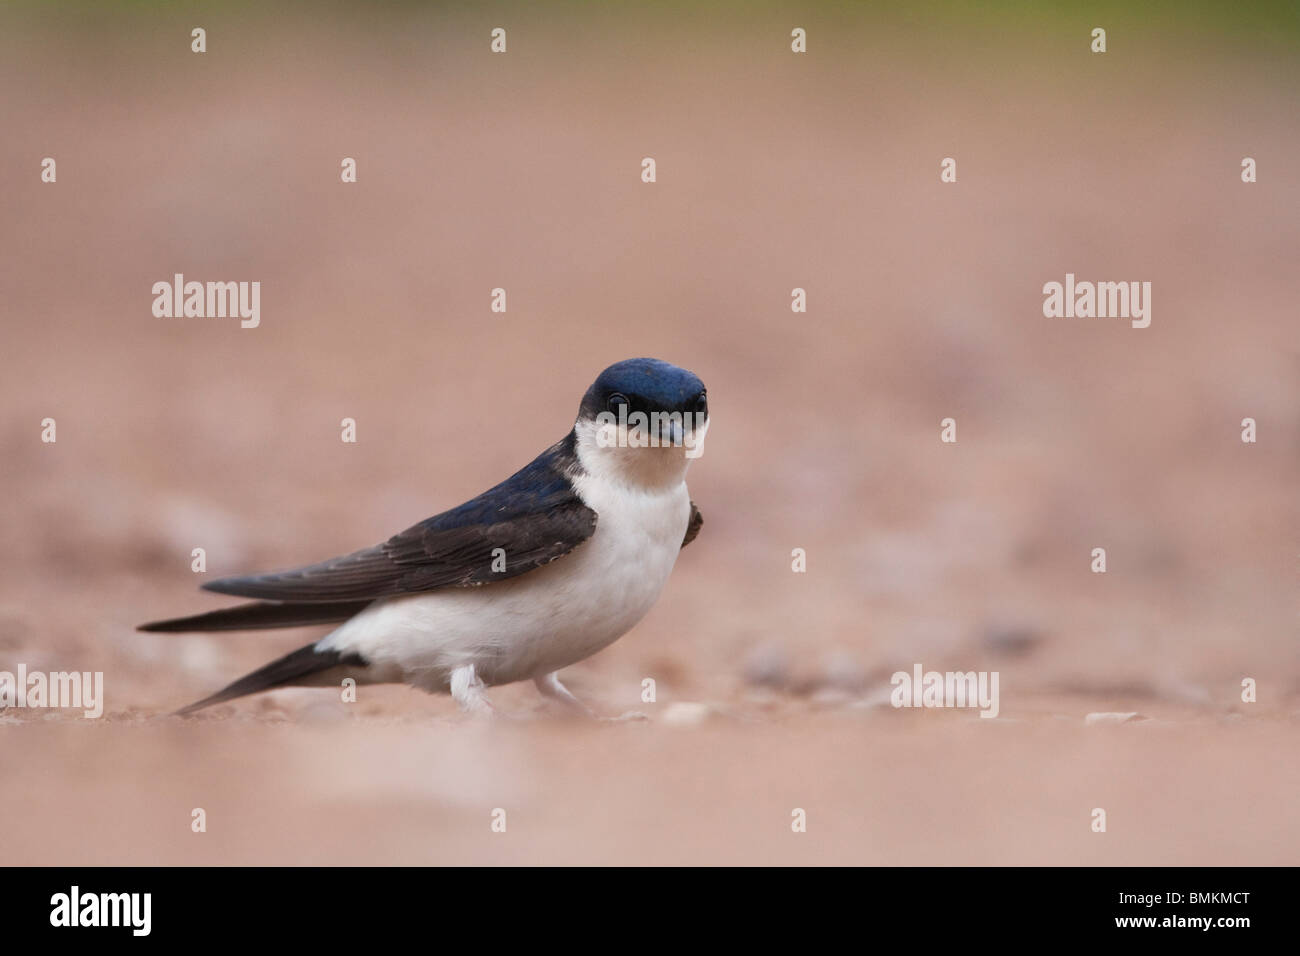 House Martin (Delichon urbica) adult on ground, Norfolk, UK. - Stock Image